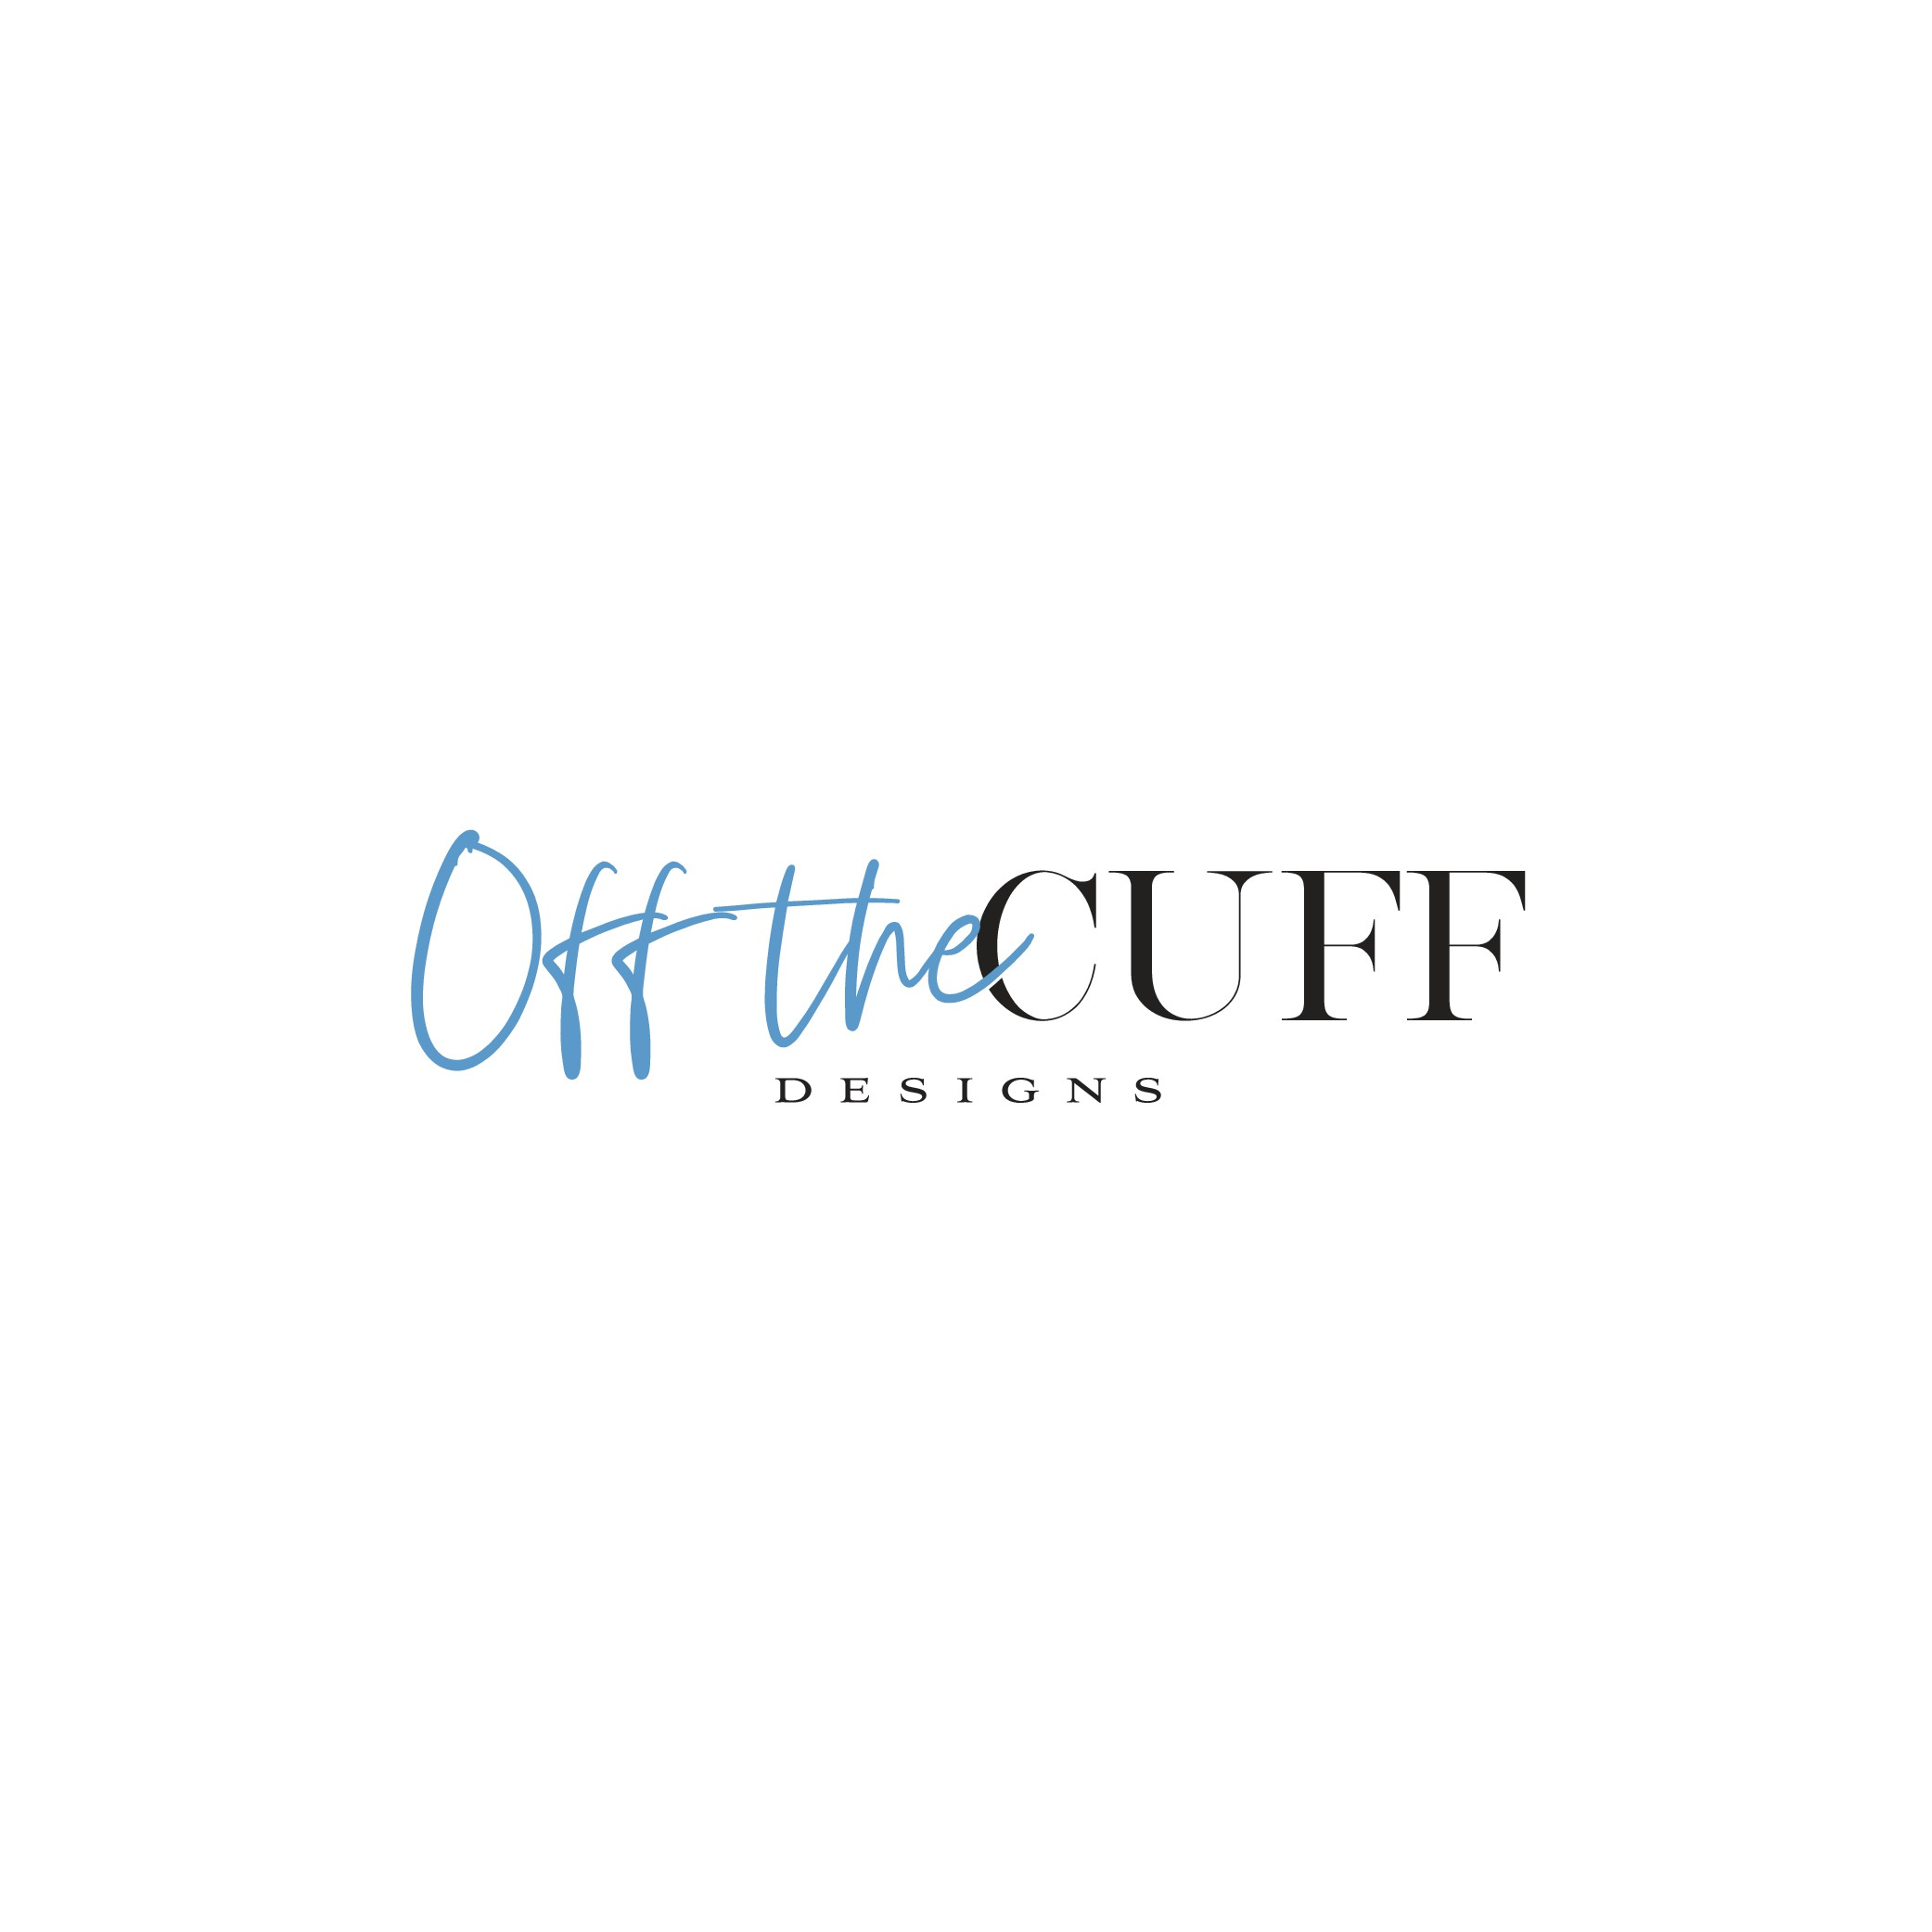 Be 'Off the Cuff' amazing ... I need you!!  Please send in your best original art with a WOW factor!